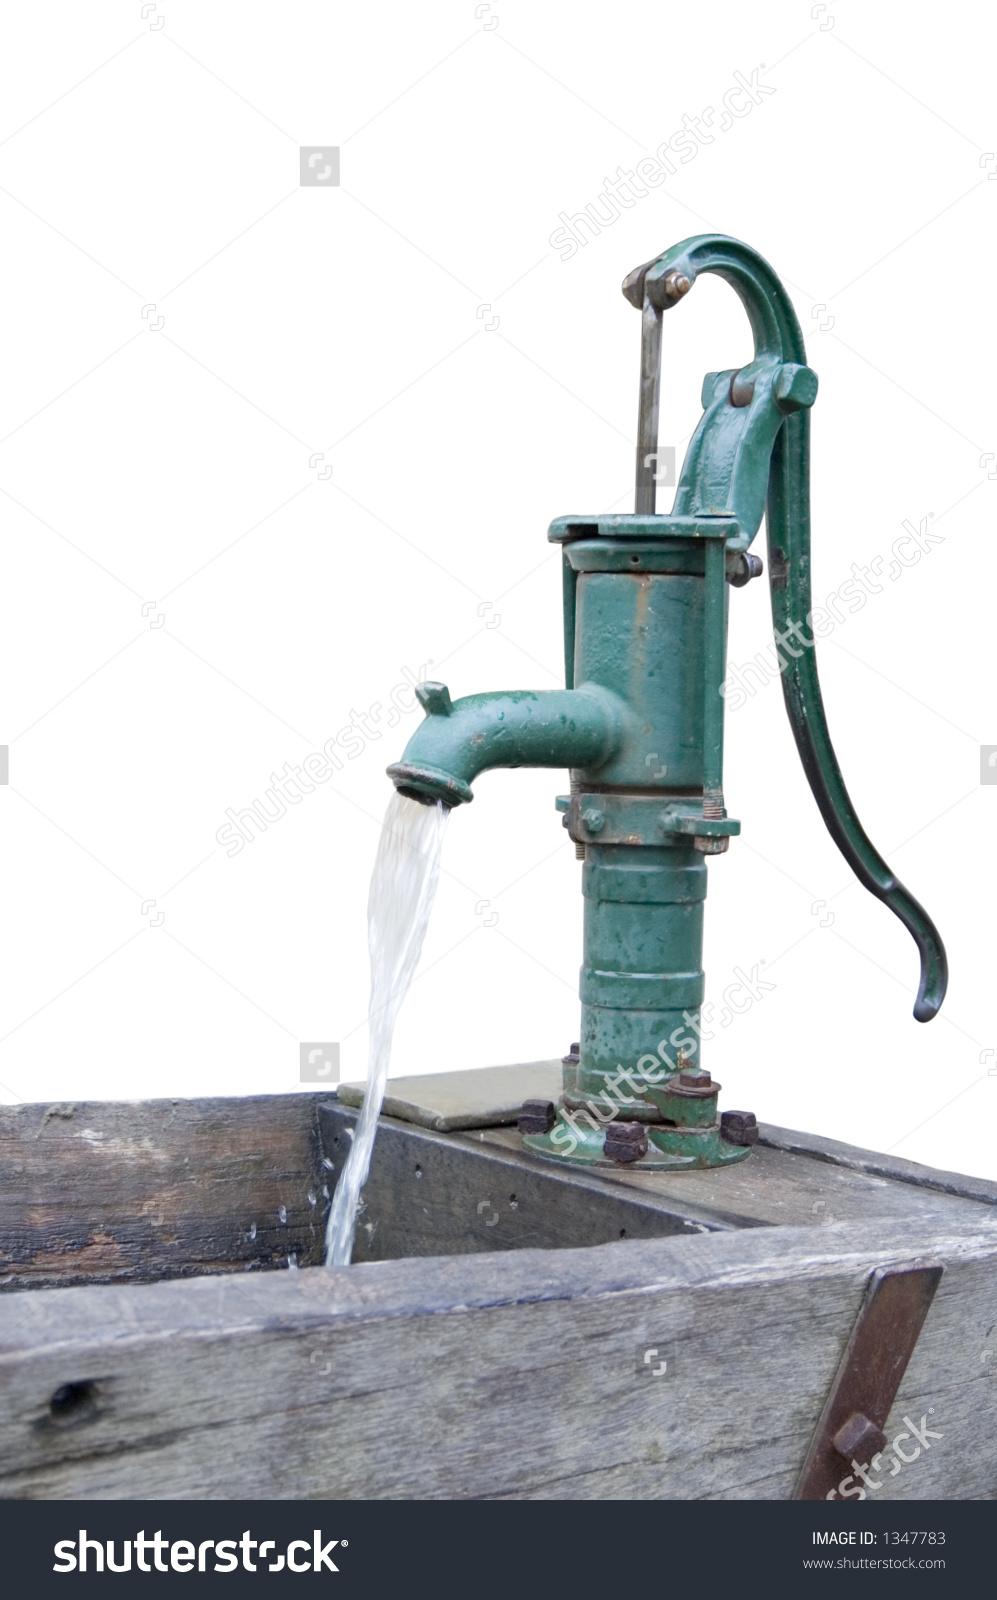 Old Fashioned Water Pump Above Drinking Stock Photo 1347783.